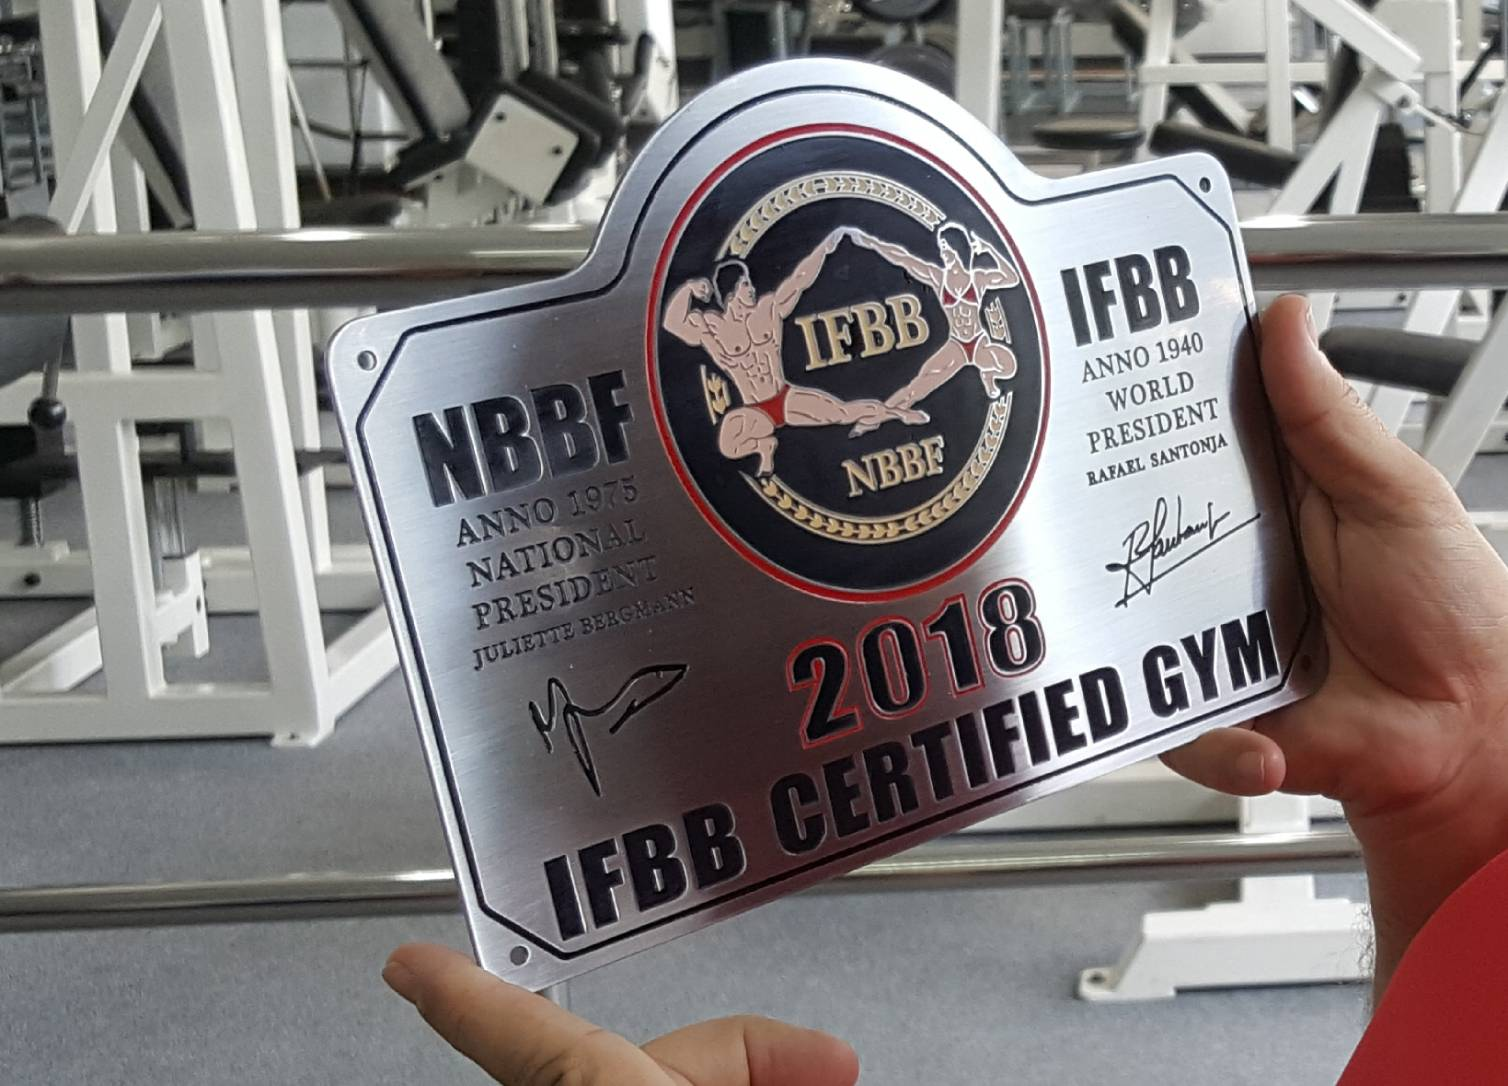 NBBF/IFBB 2018 Certified Gym - Plaquette RVS